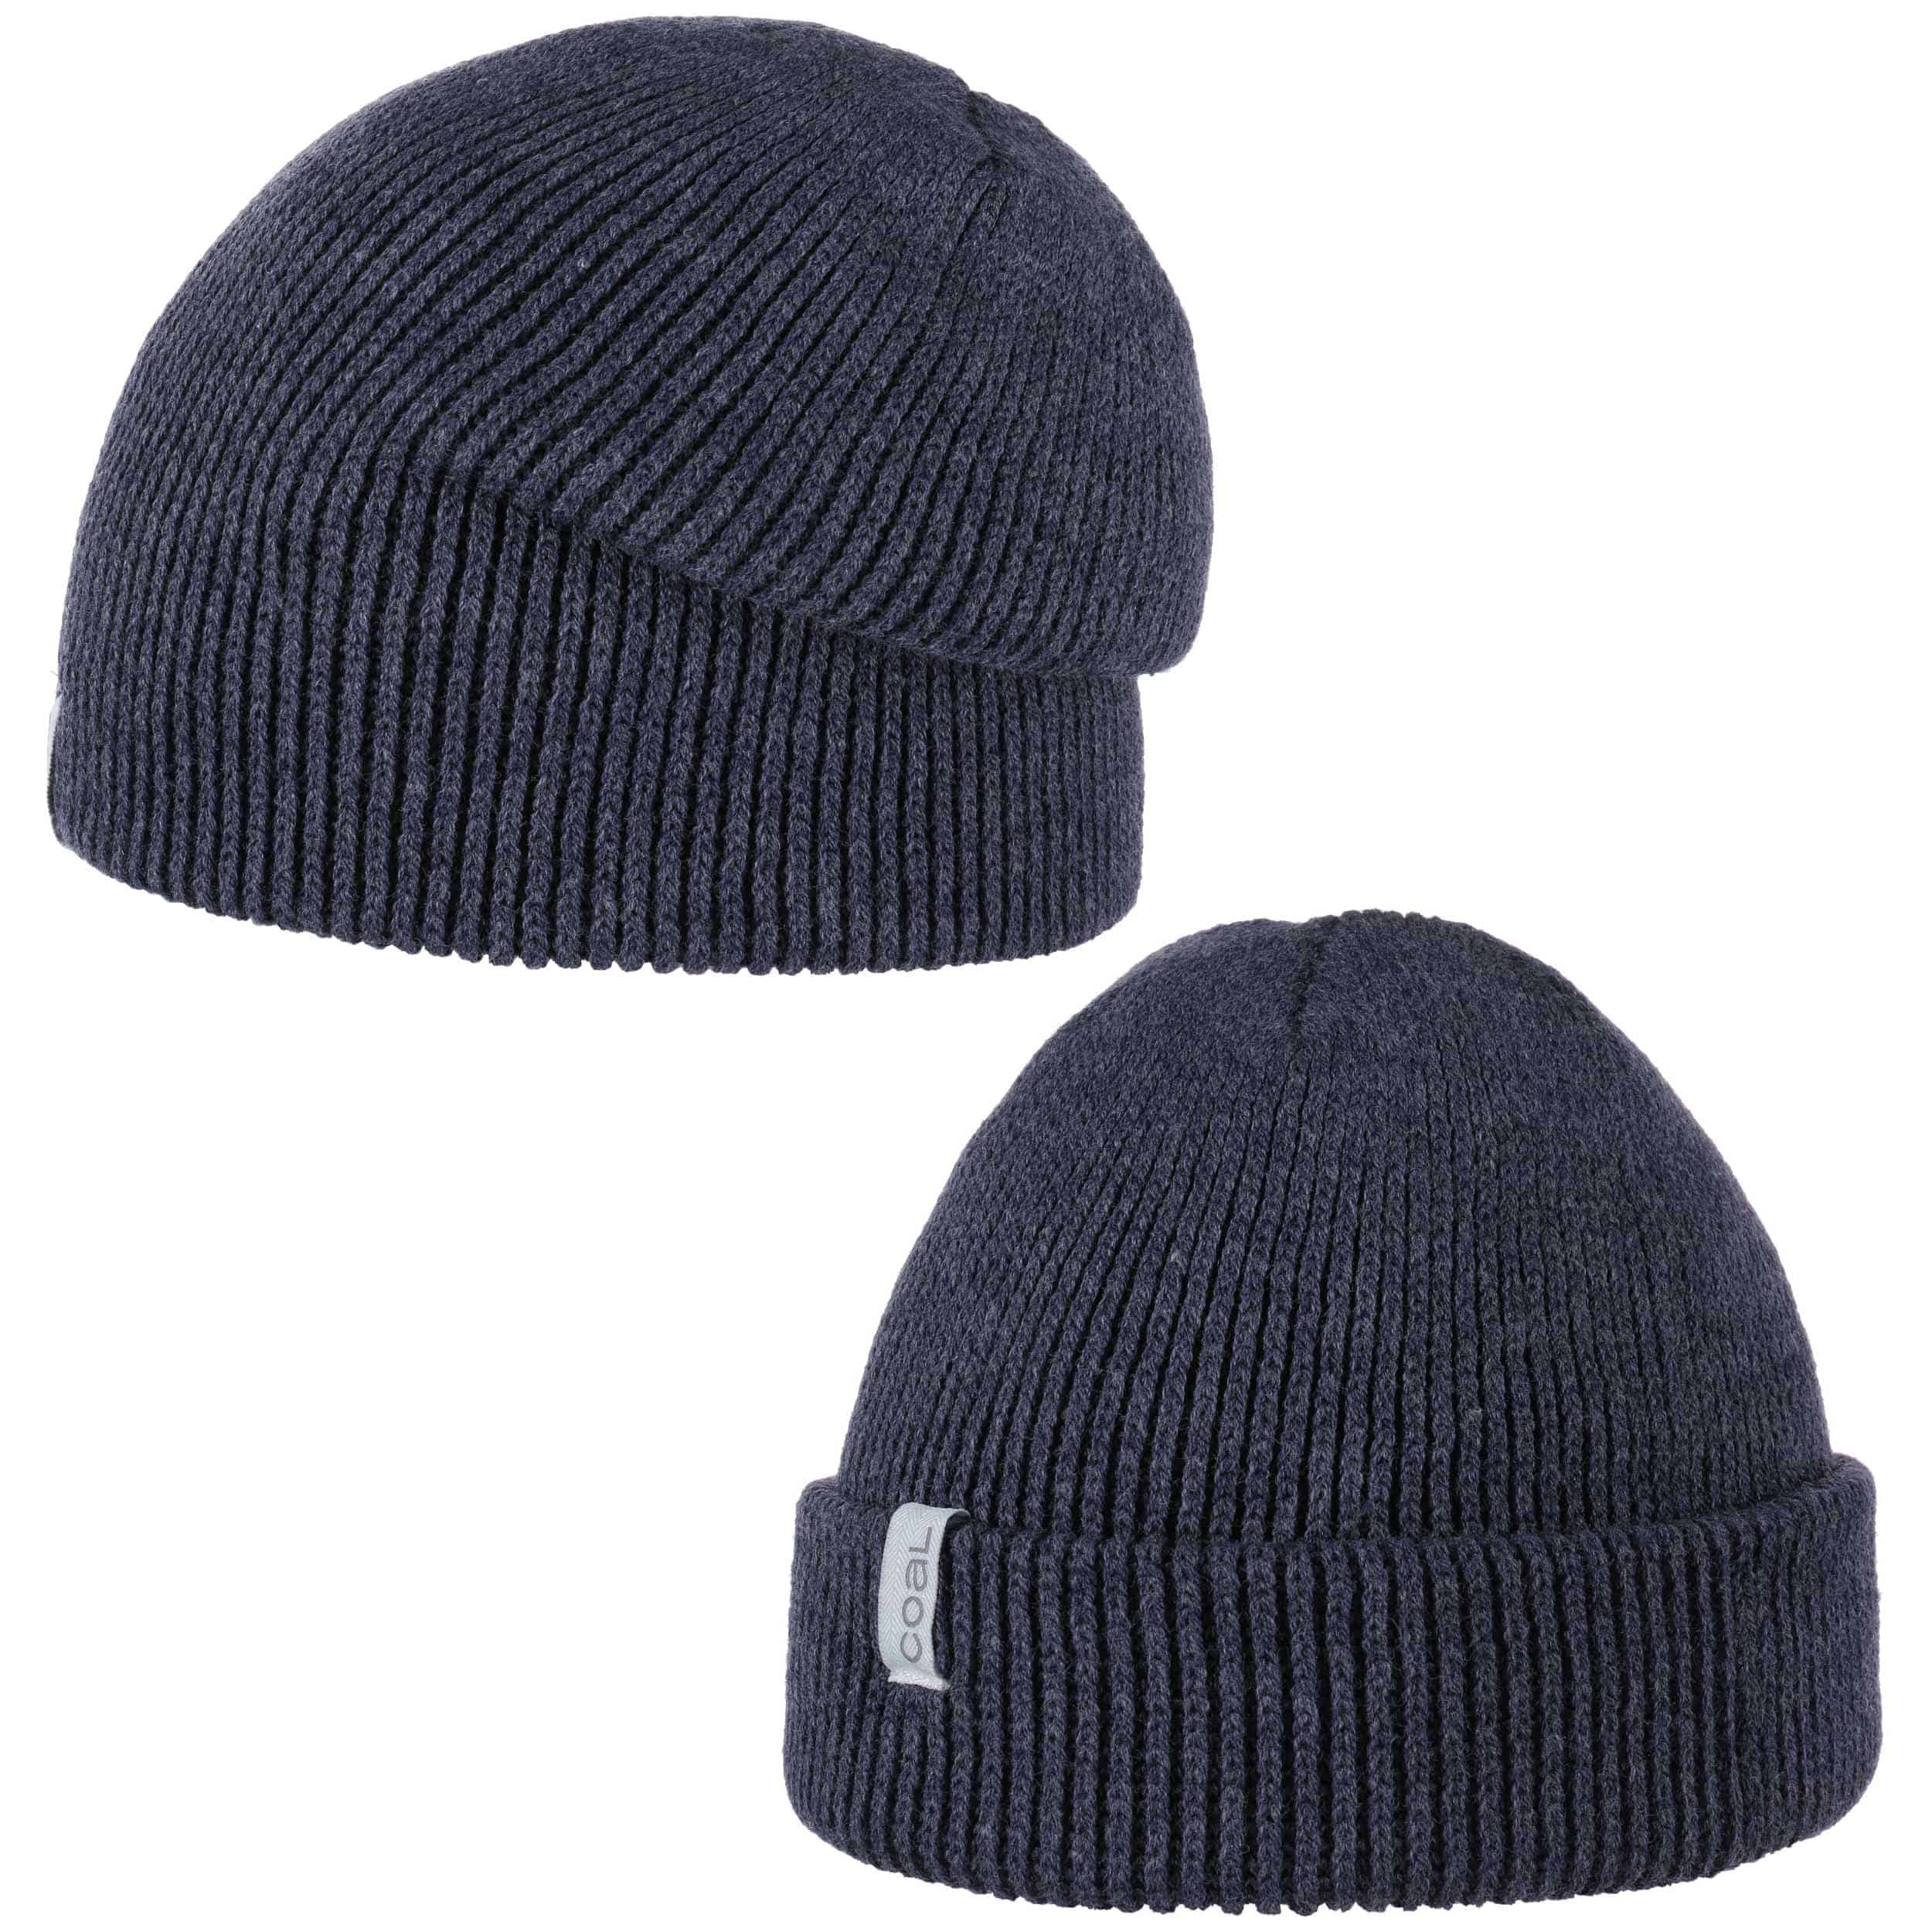 a9d839cd923 ... Frena Solid 2 in 1 Beanie by Coal - navy 6 ...